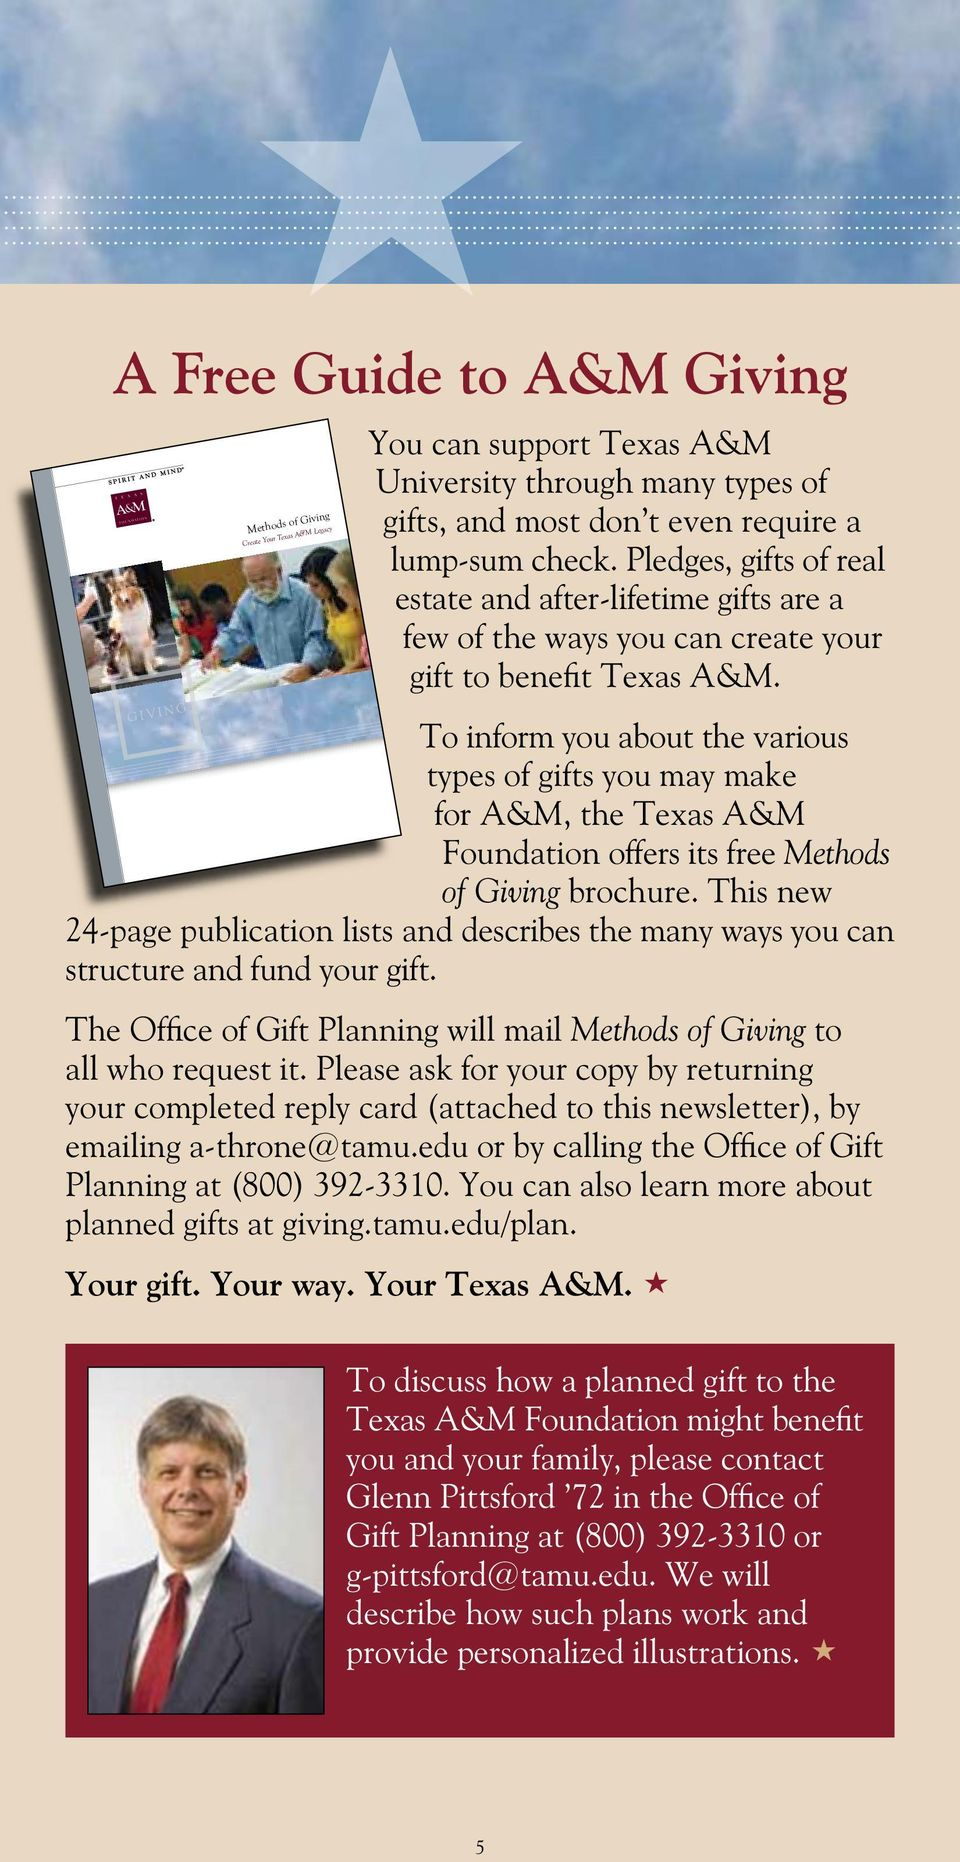 To inform you about the various types of gifts you may make for A&M, the Texas A&M Foundation offers its free Methods of Giving brochure.